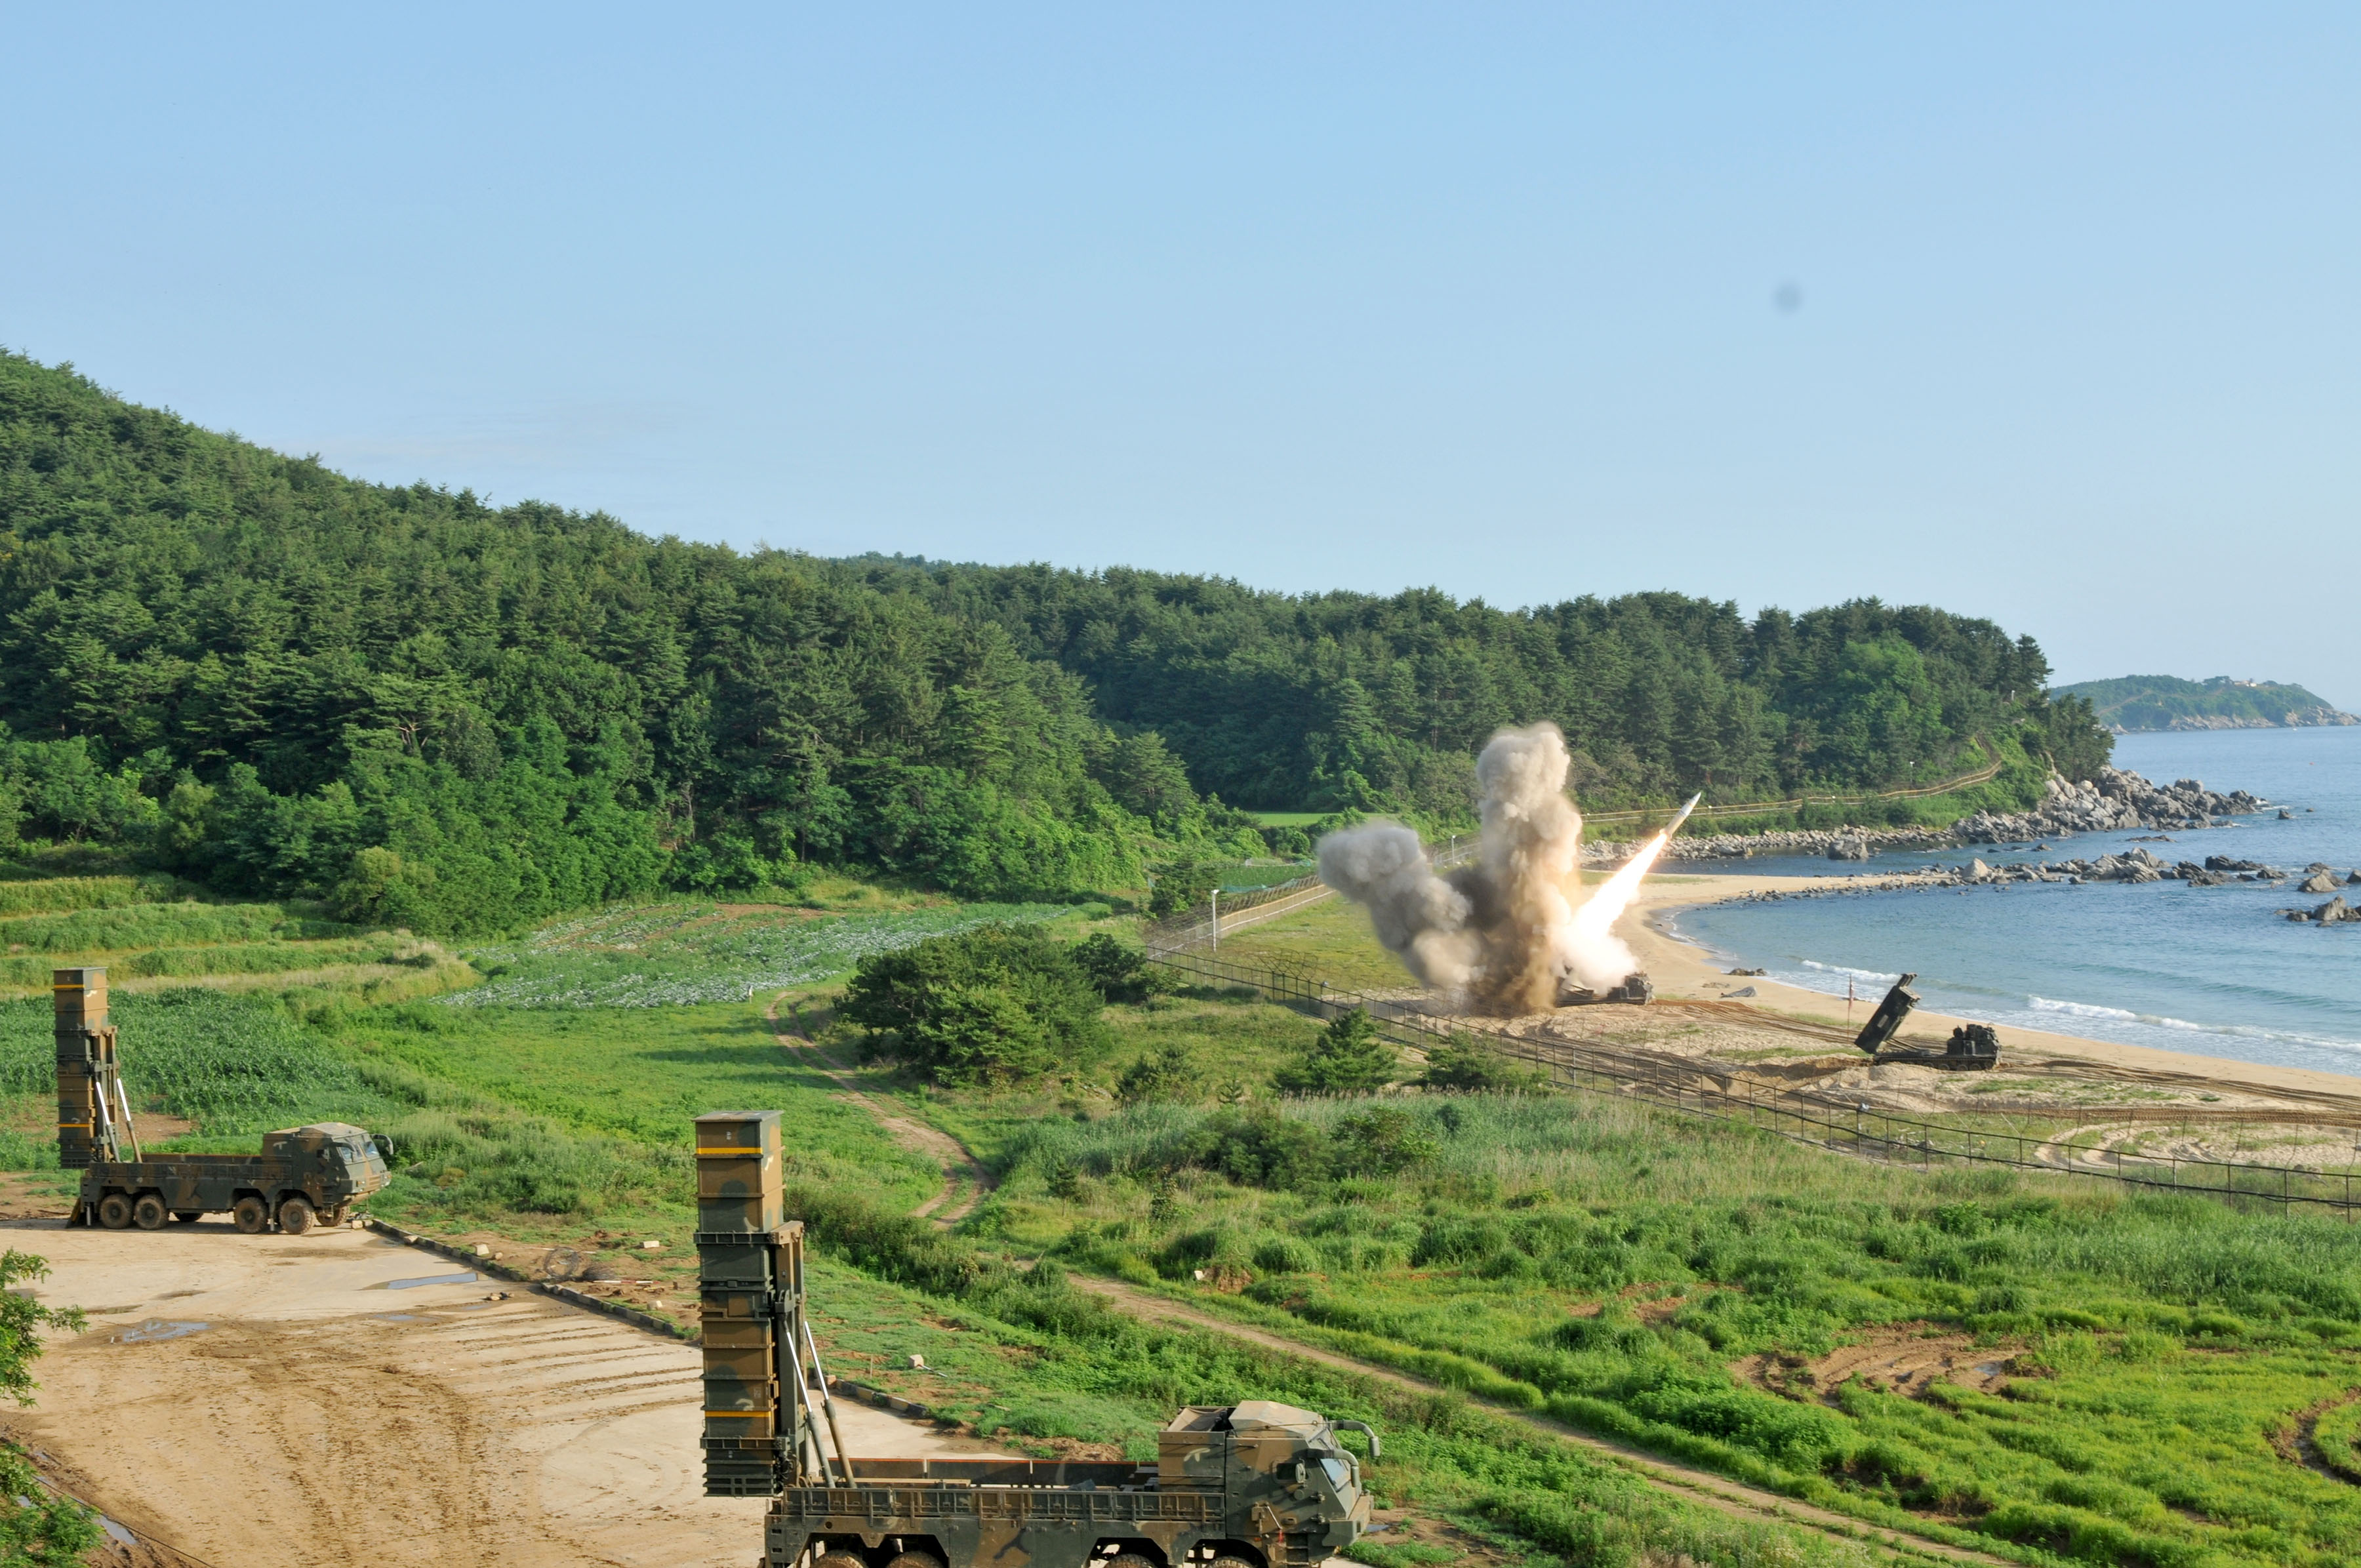 An M270 Multiple Launch Rocket System assigned to the 210th Field Artillery Brigade, 2nd Republic of Korea (ROK)/U. S. Combined Division fires an MGM-140 Army Tactical Missile into the East Sea off South Korea, July 5. The launch demonstrated the deep-strike capabilities that allow the ROK/U.S. alliance to neutralize threats in the region—an important capability given recent technological advances that U.S. adversaries have made while the U.S. has been battling nonstate foes like al-Qaida and the Taliban. (U.S. Army photo by Staff Sgt. Sinthia Rosario, 5th Mobile Public Affairs Detachment)